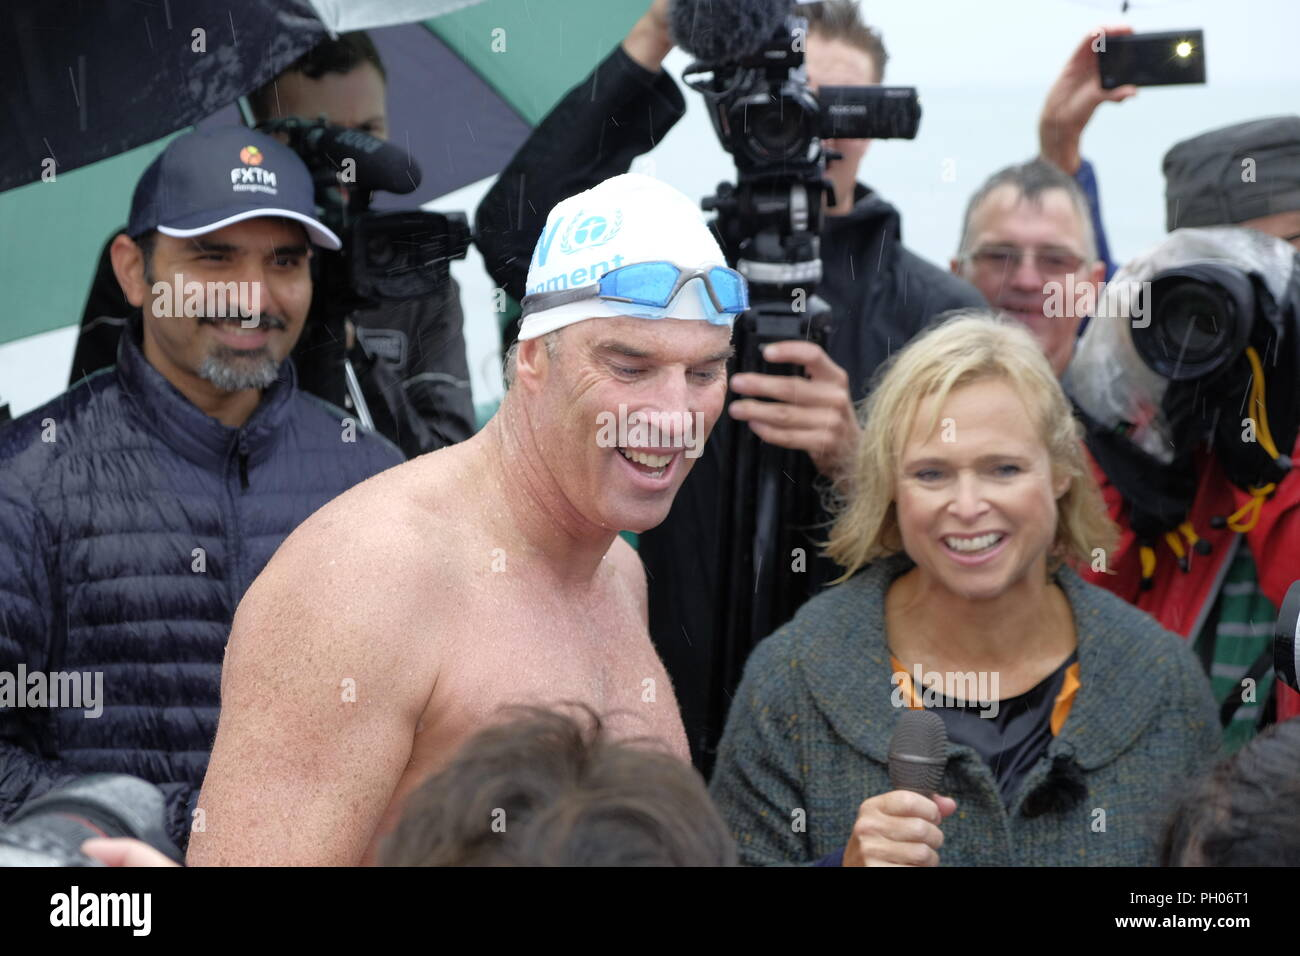 Dover, Kent, UK. 29th August 2018. Lewis Pugh completes his grueling 'Long Swim'  challenge by swimming from Lands End to Dover (330 miles) meaning he will swim 5 hours every day for 50 days. Lewis Pugh talking to the media having completed the swim. Photo Credit Paul Lawrenson /Alamy Live News - Stock Image